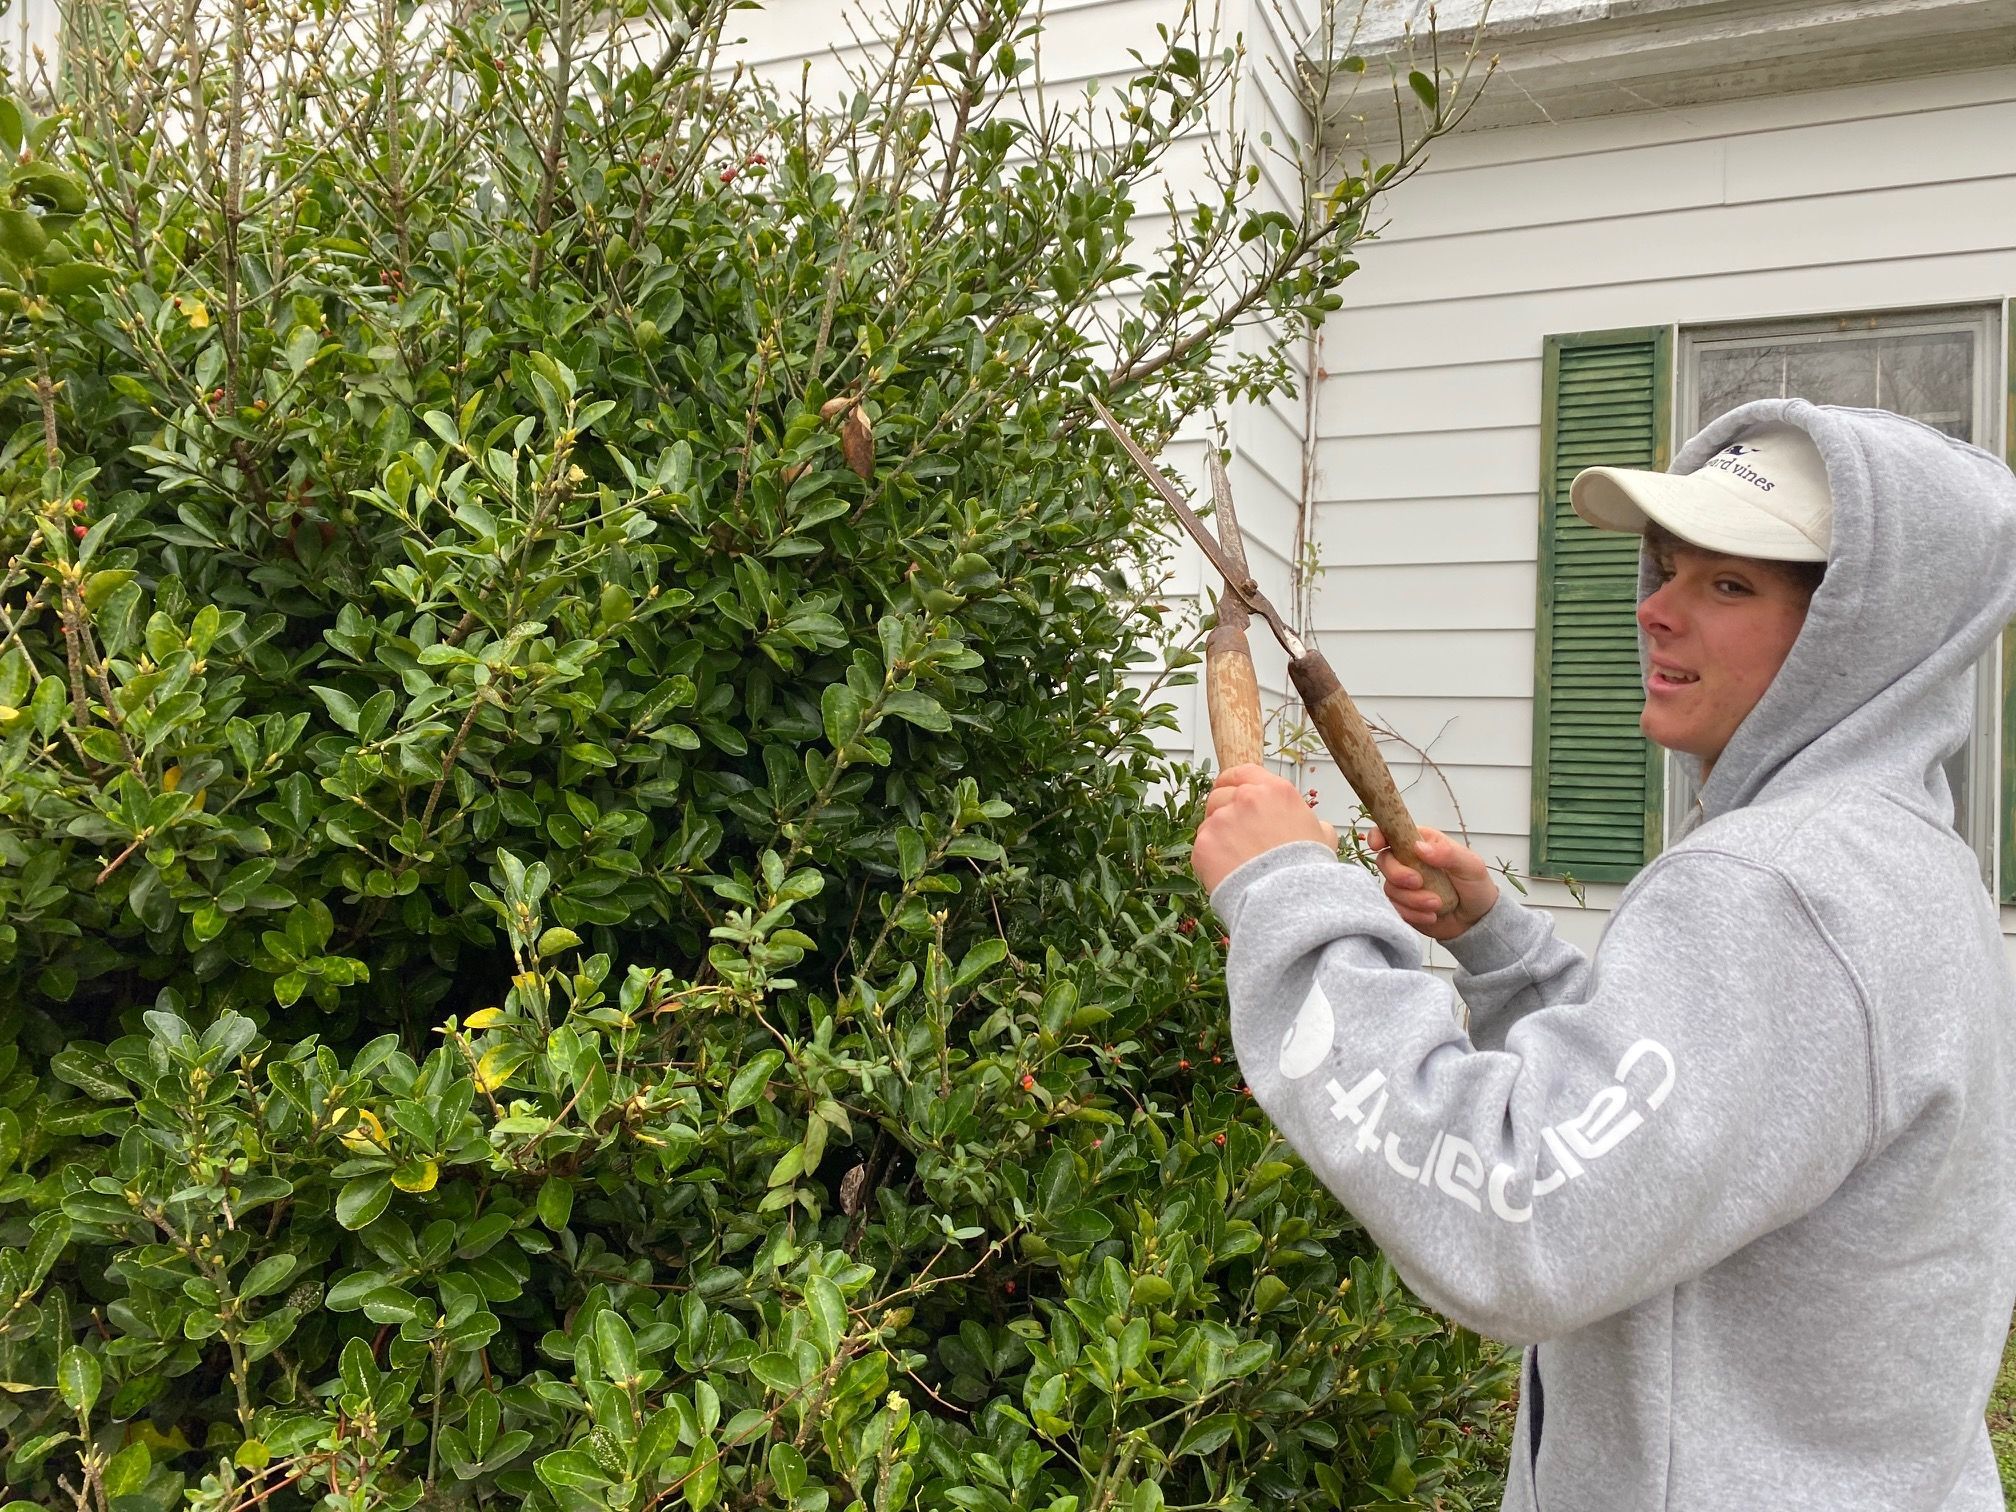 private school boarding school student doing yard work for community service